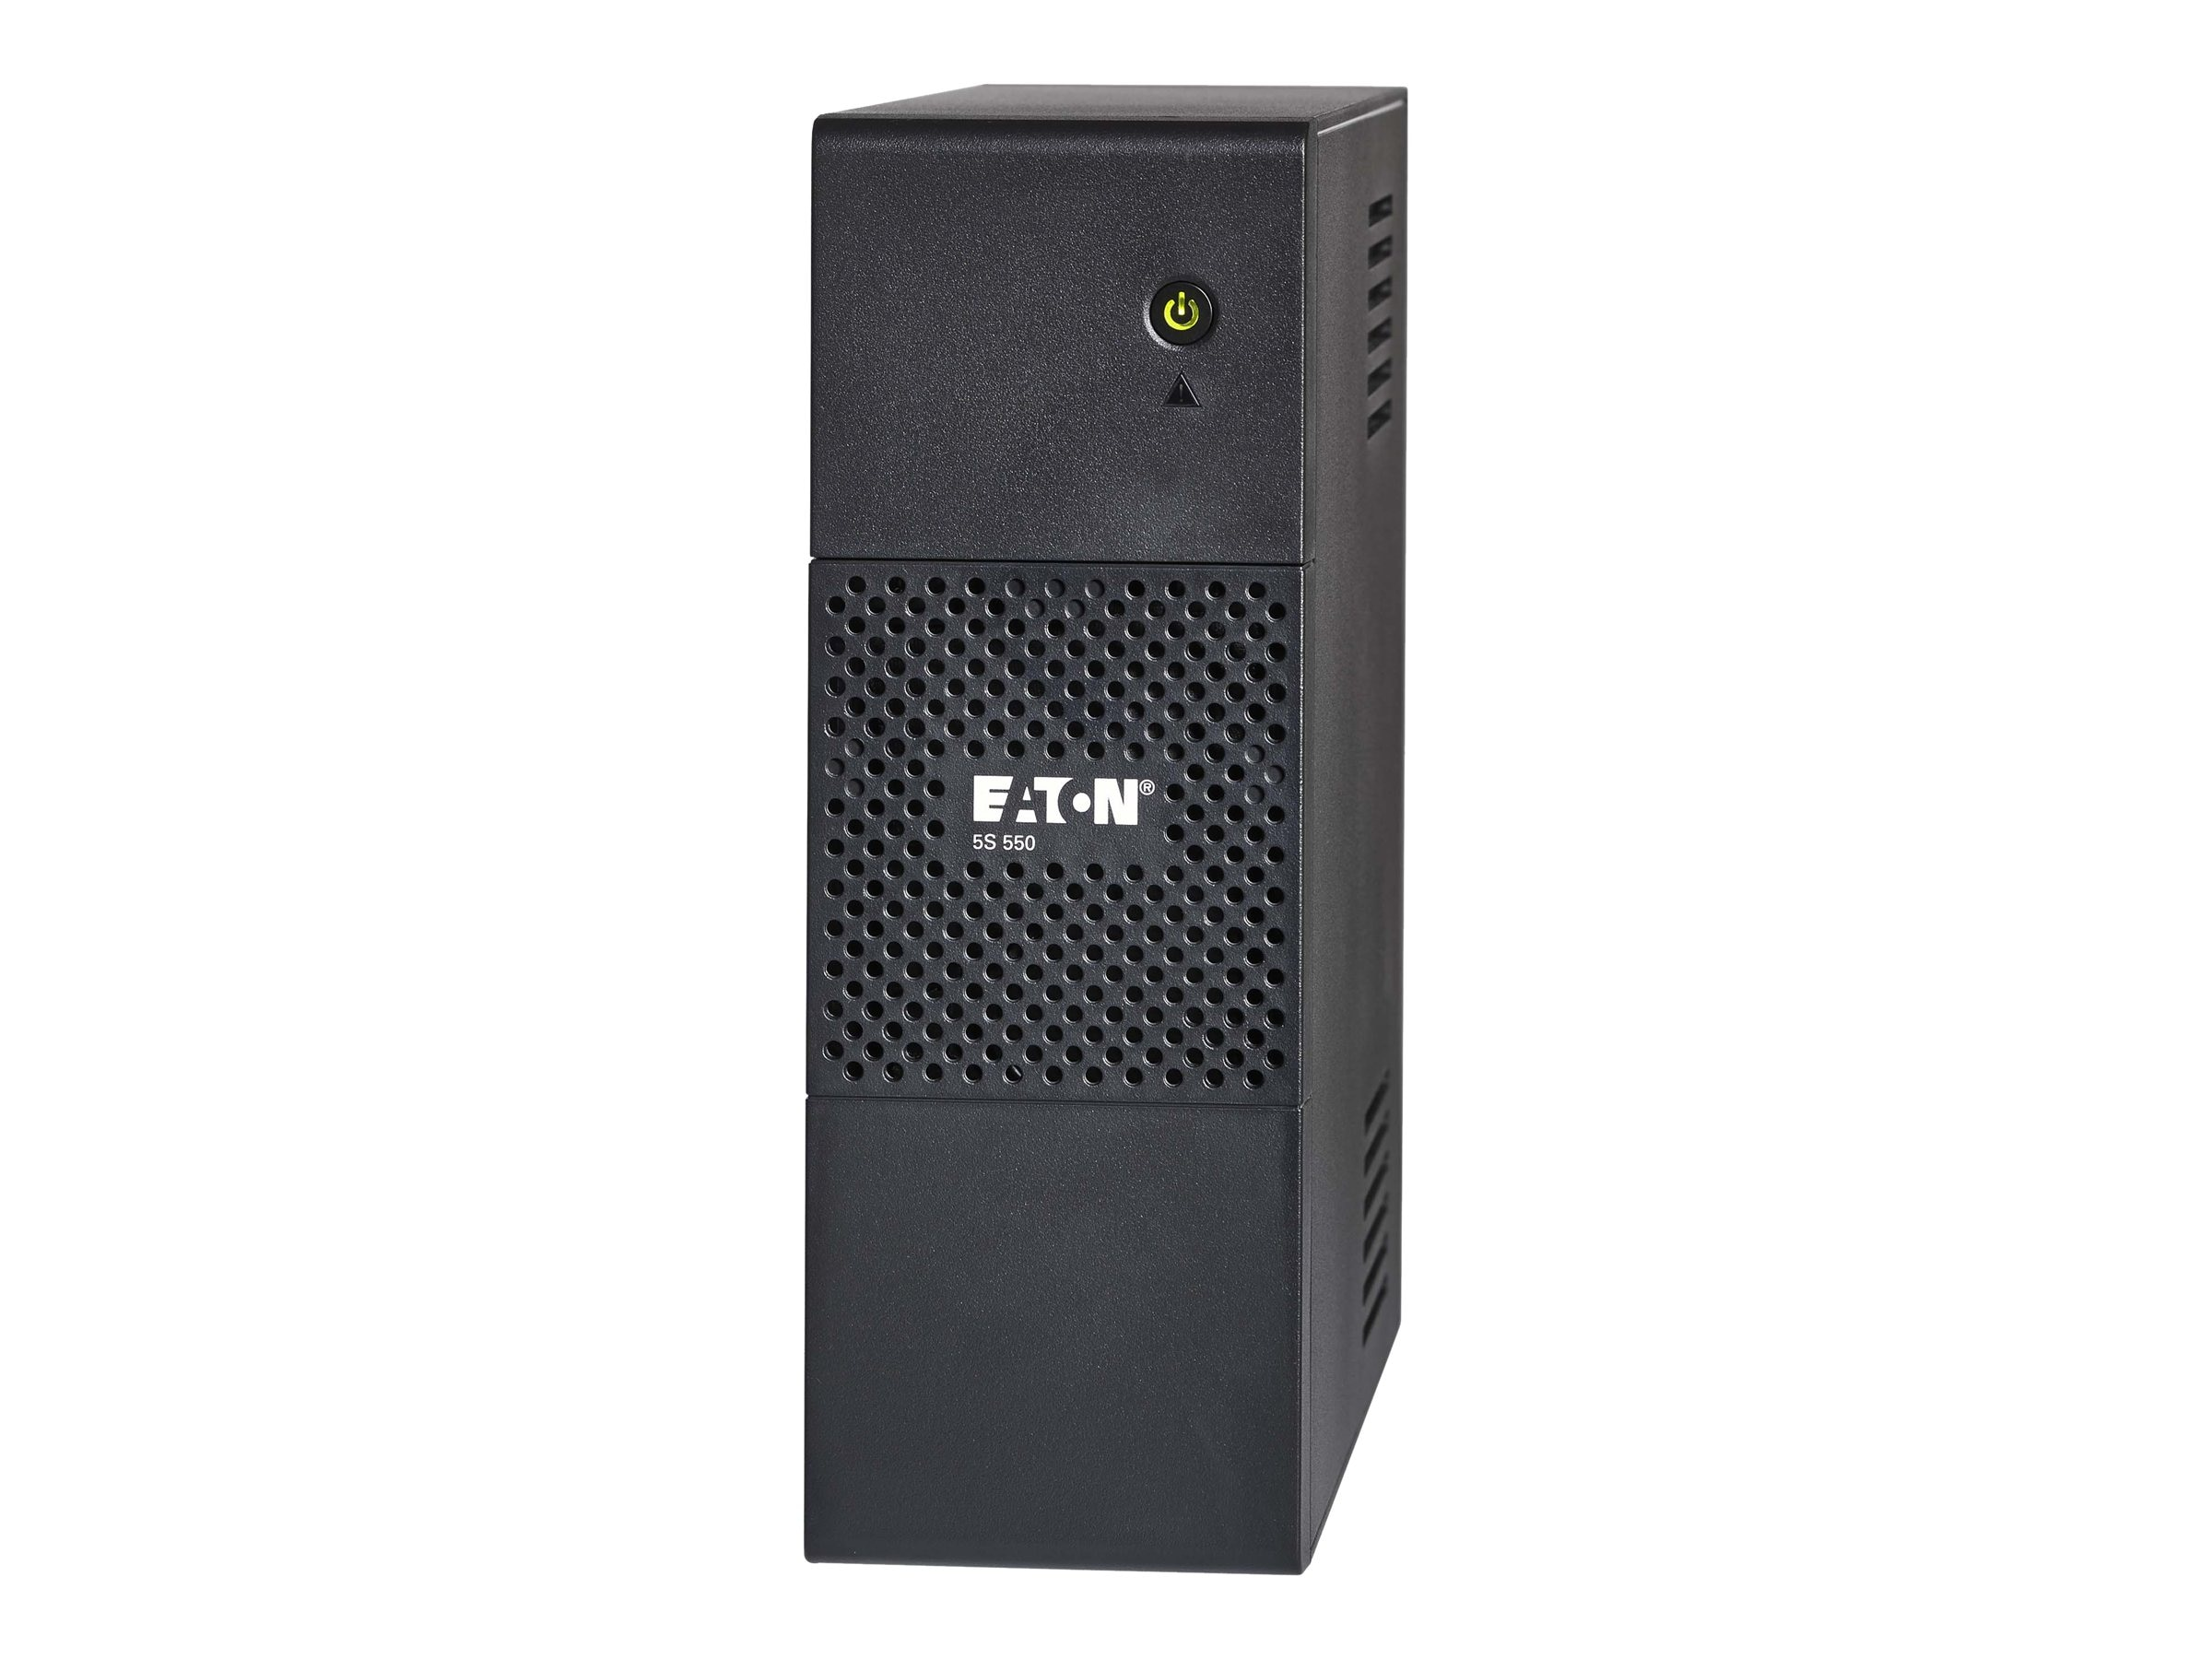 Eaton 5S 700VA 420W Global 208 230V Line-interactive Tower UPS C14 Input (6) C13 Outlets USB, 5S700G